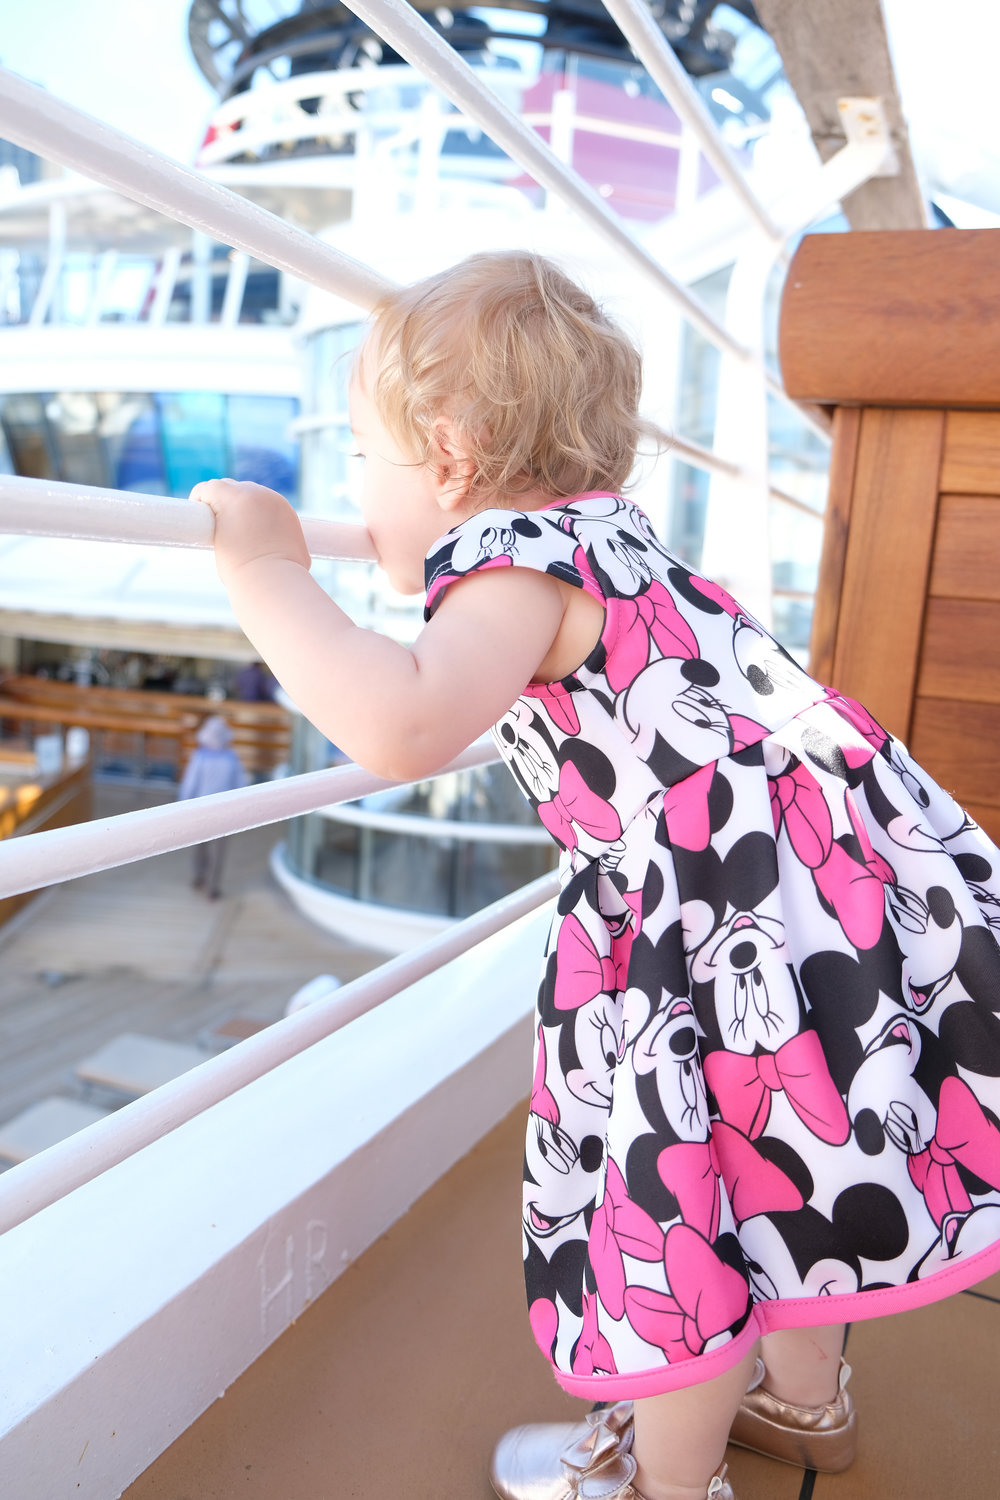 Minnie Mouse Style onboard the Disney Wonder | Our Disney Cruise to Alaska | Your Guide to Cruising with Disney Cruise Lines by Totes and the City